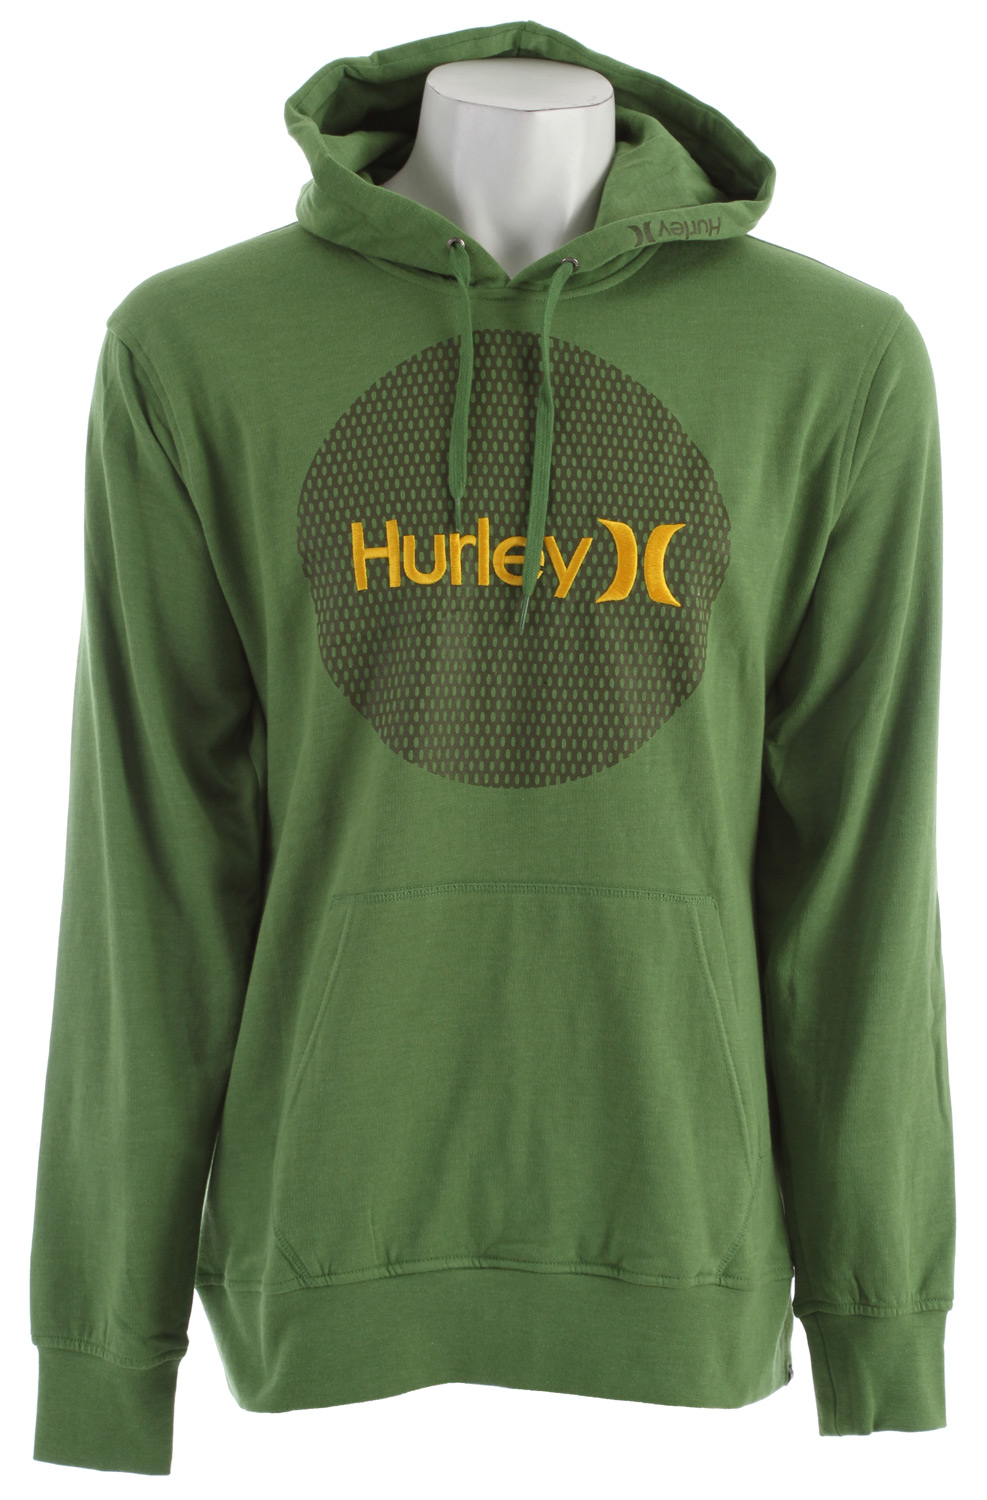 Surf Key Features of the Hurley Krush & Only Mesh Hoodie: Regular Fit 220gm Pullover Fleece; 60% Cotton/40% Polyester Woven icon loop label, soft-hand print, and satin stitch embroidery. - $34.95